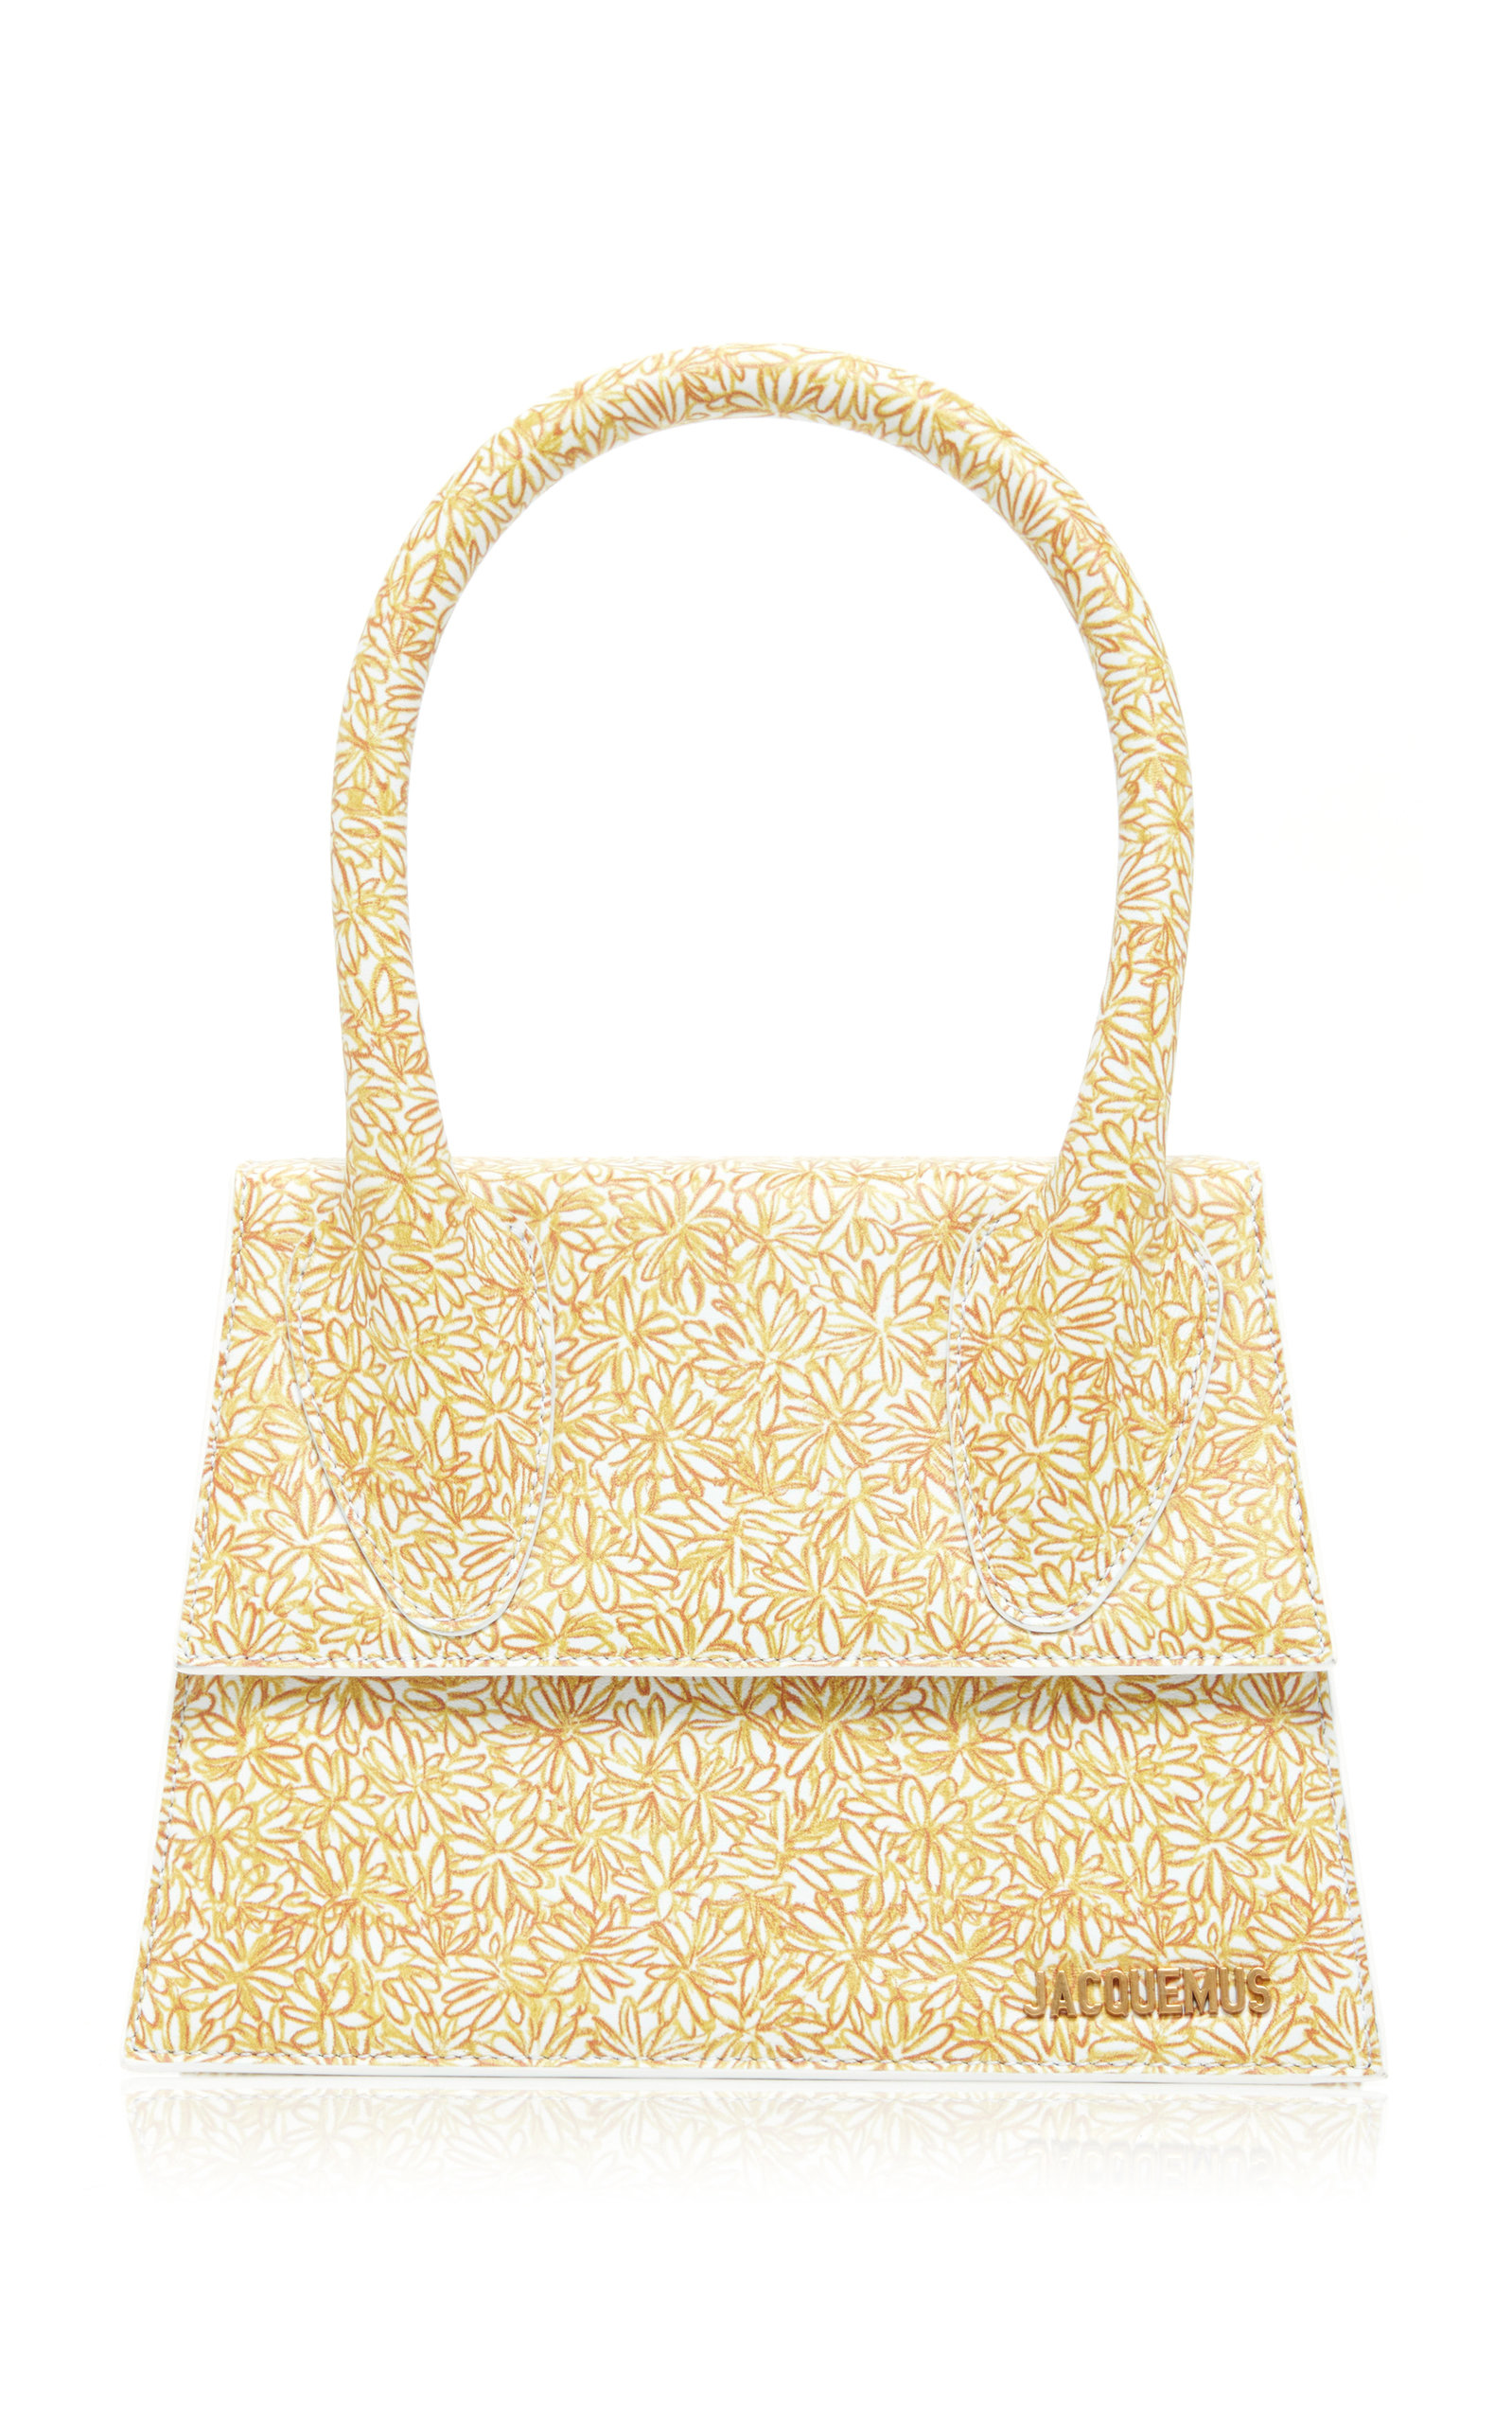 Le Grand Chiquito Floral Print Leather Bag by Jacquemus